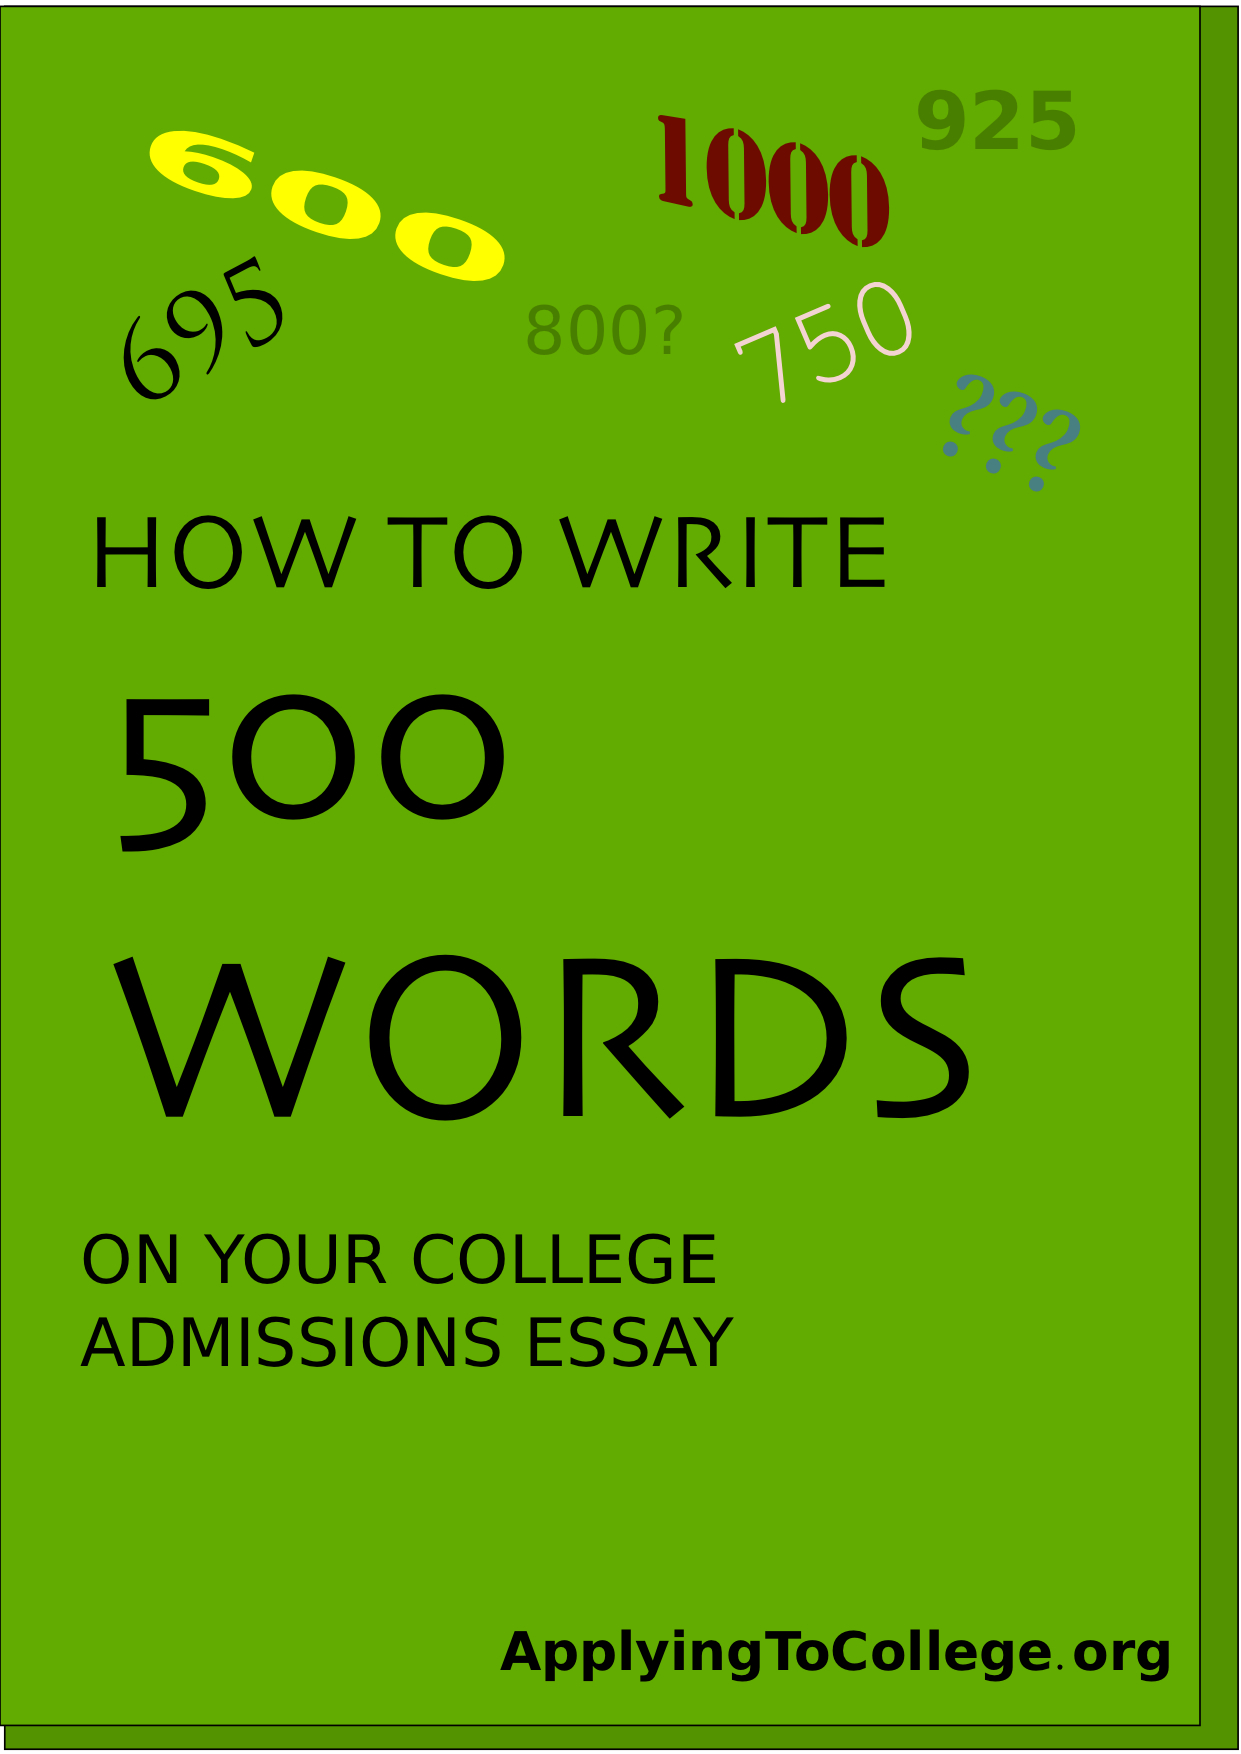 ... college admission mind blowingly fantastic essay to write to passions